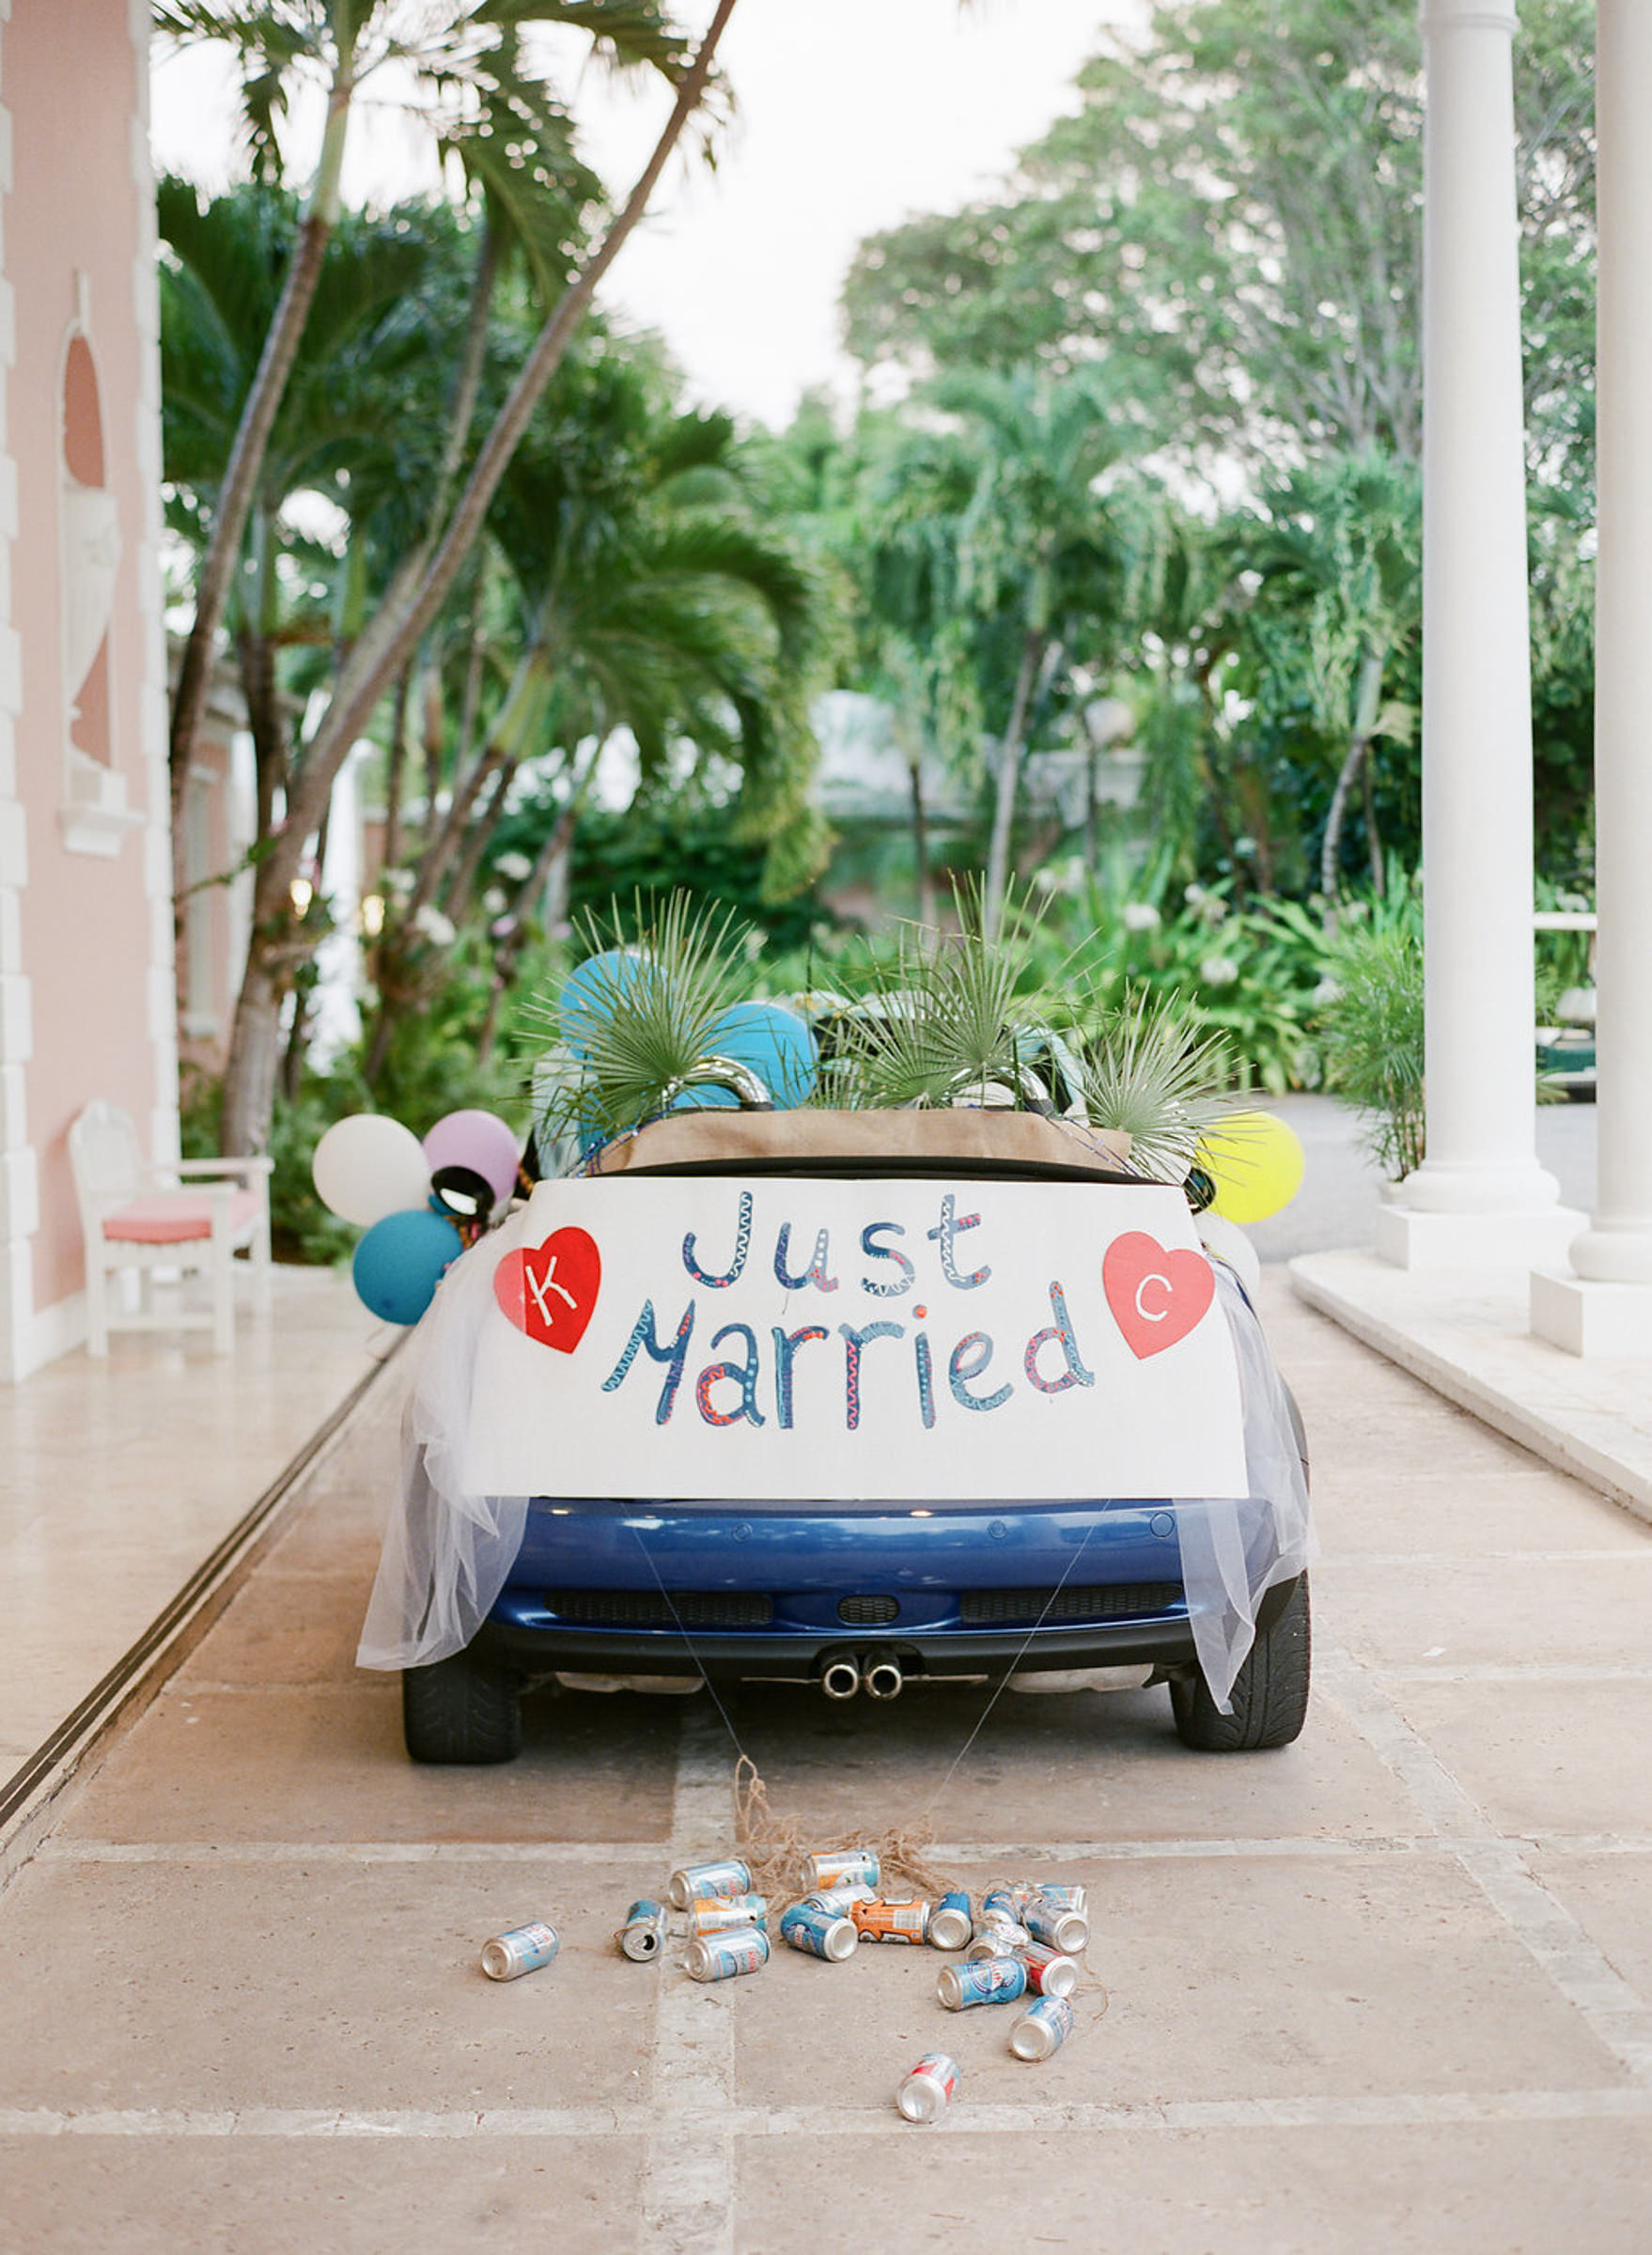 Fun just married sign with balloons on convertible - photo by Corbin Gurkin